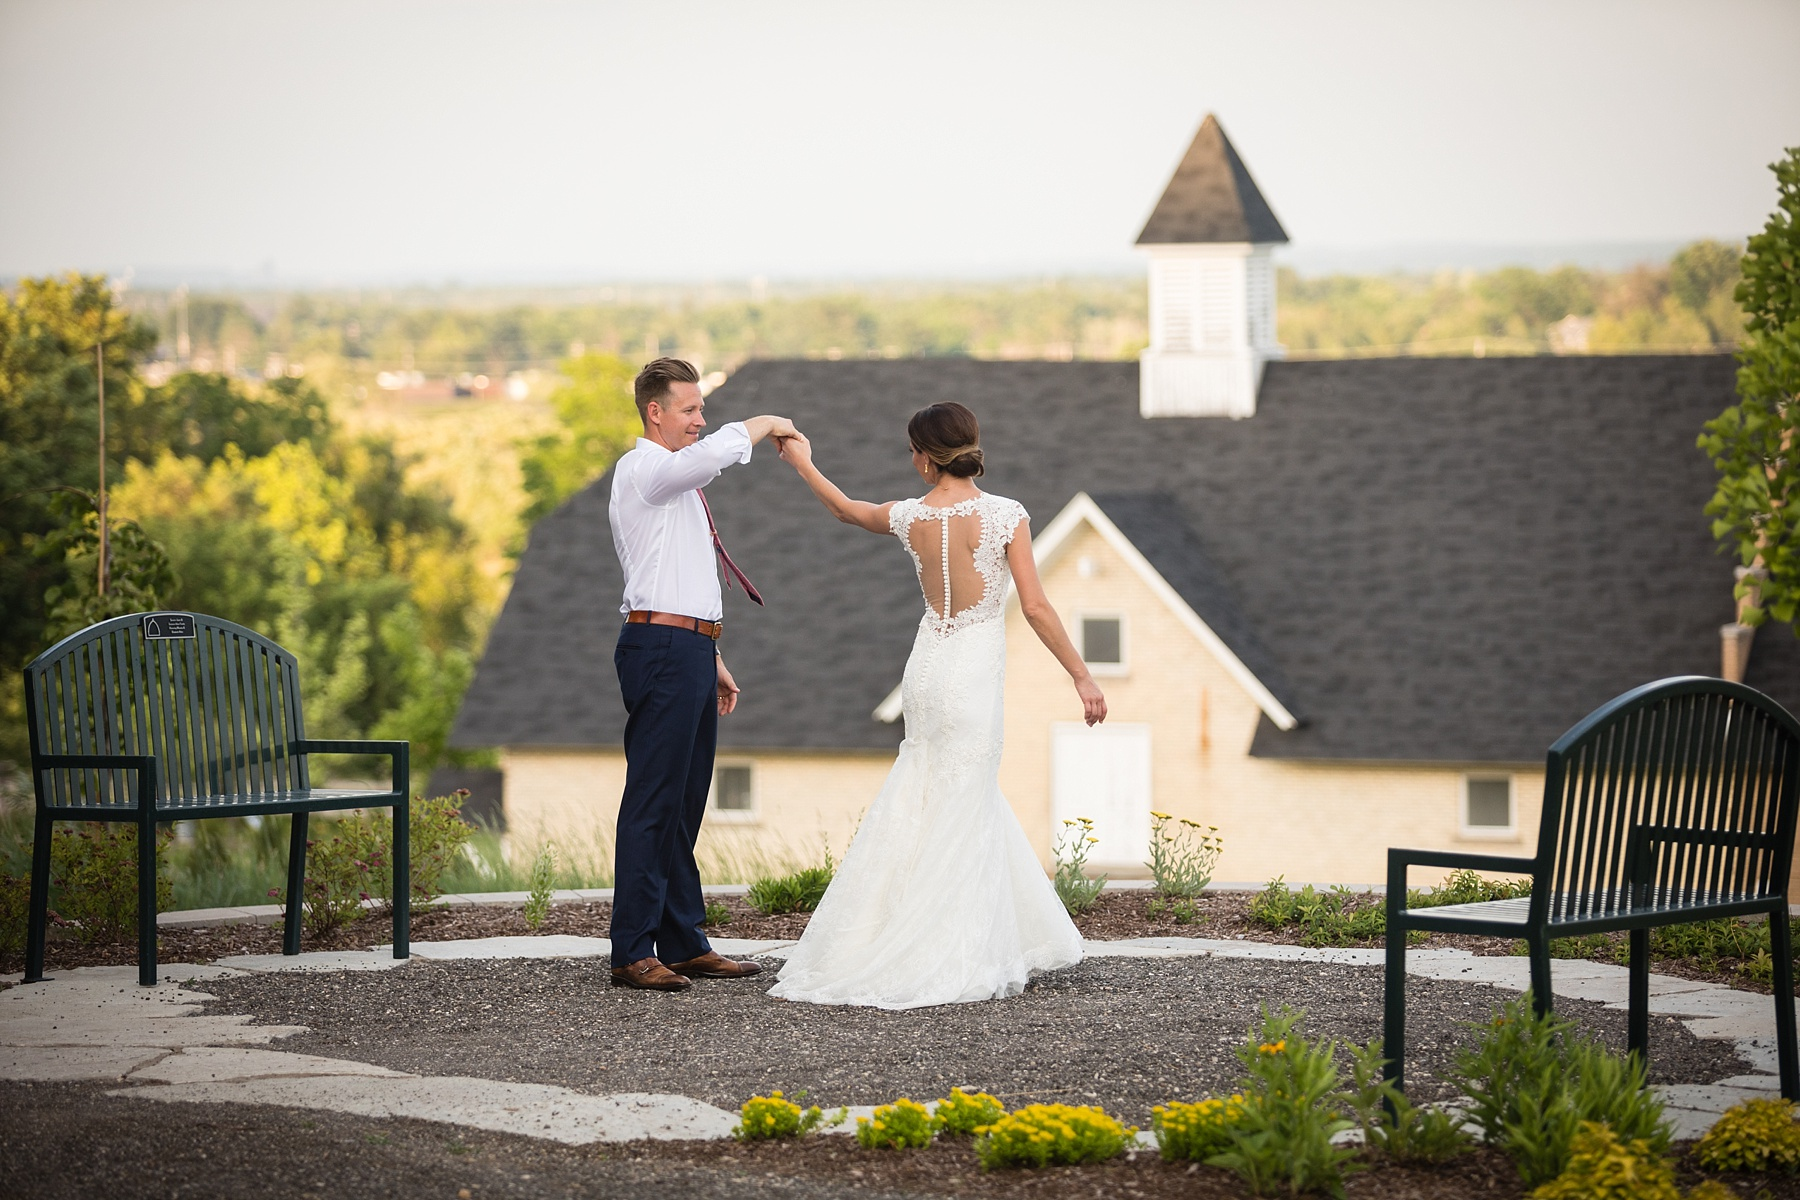 Brandon_Shafer_Photography_Traverse_City_Wedding_0060.jpg